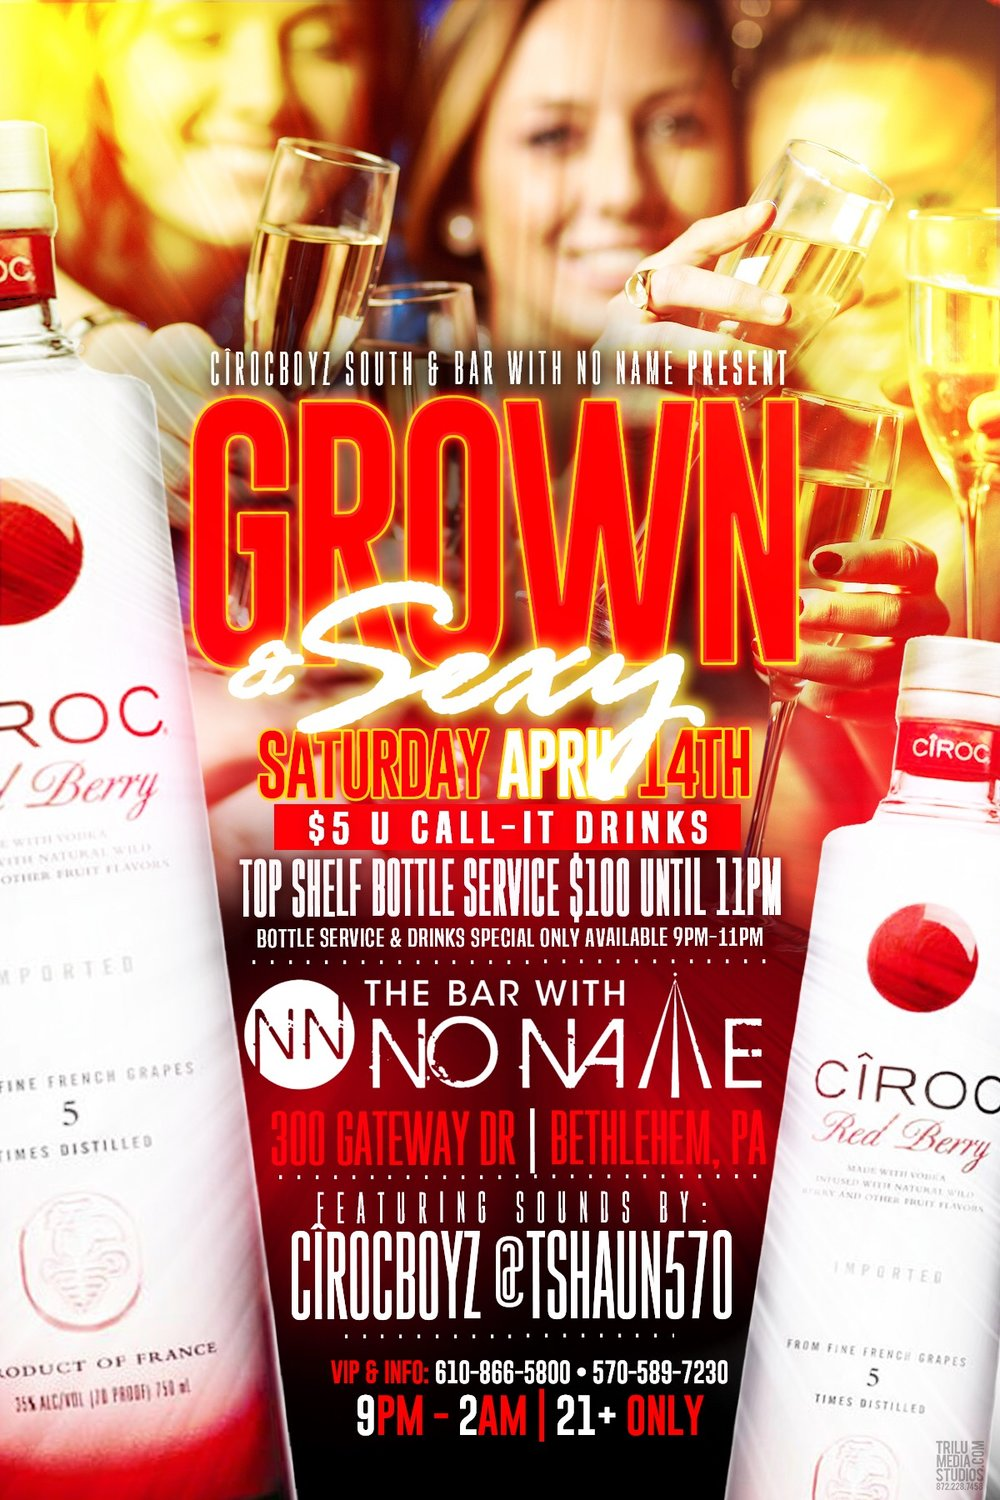 Grown and Sexy Saturdays, april 14th